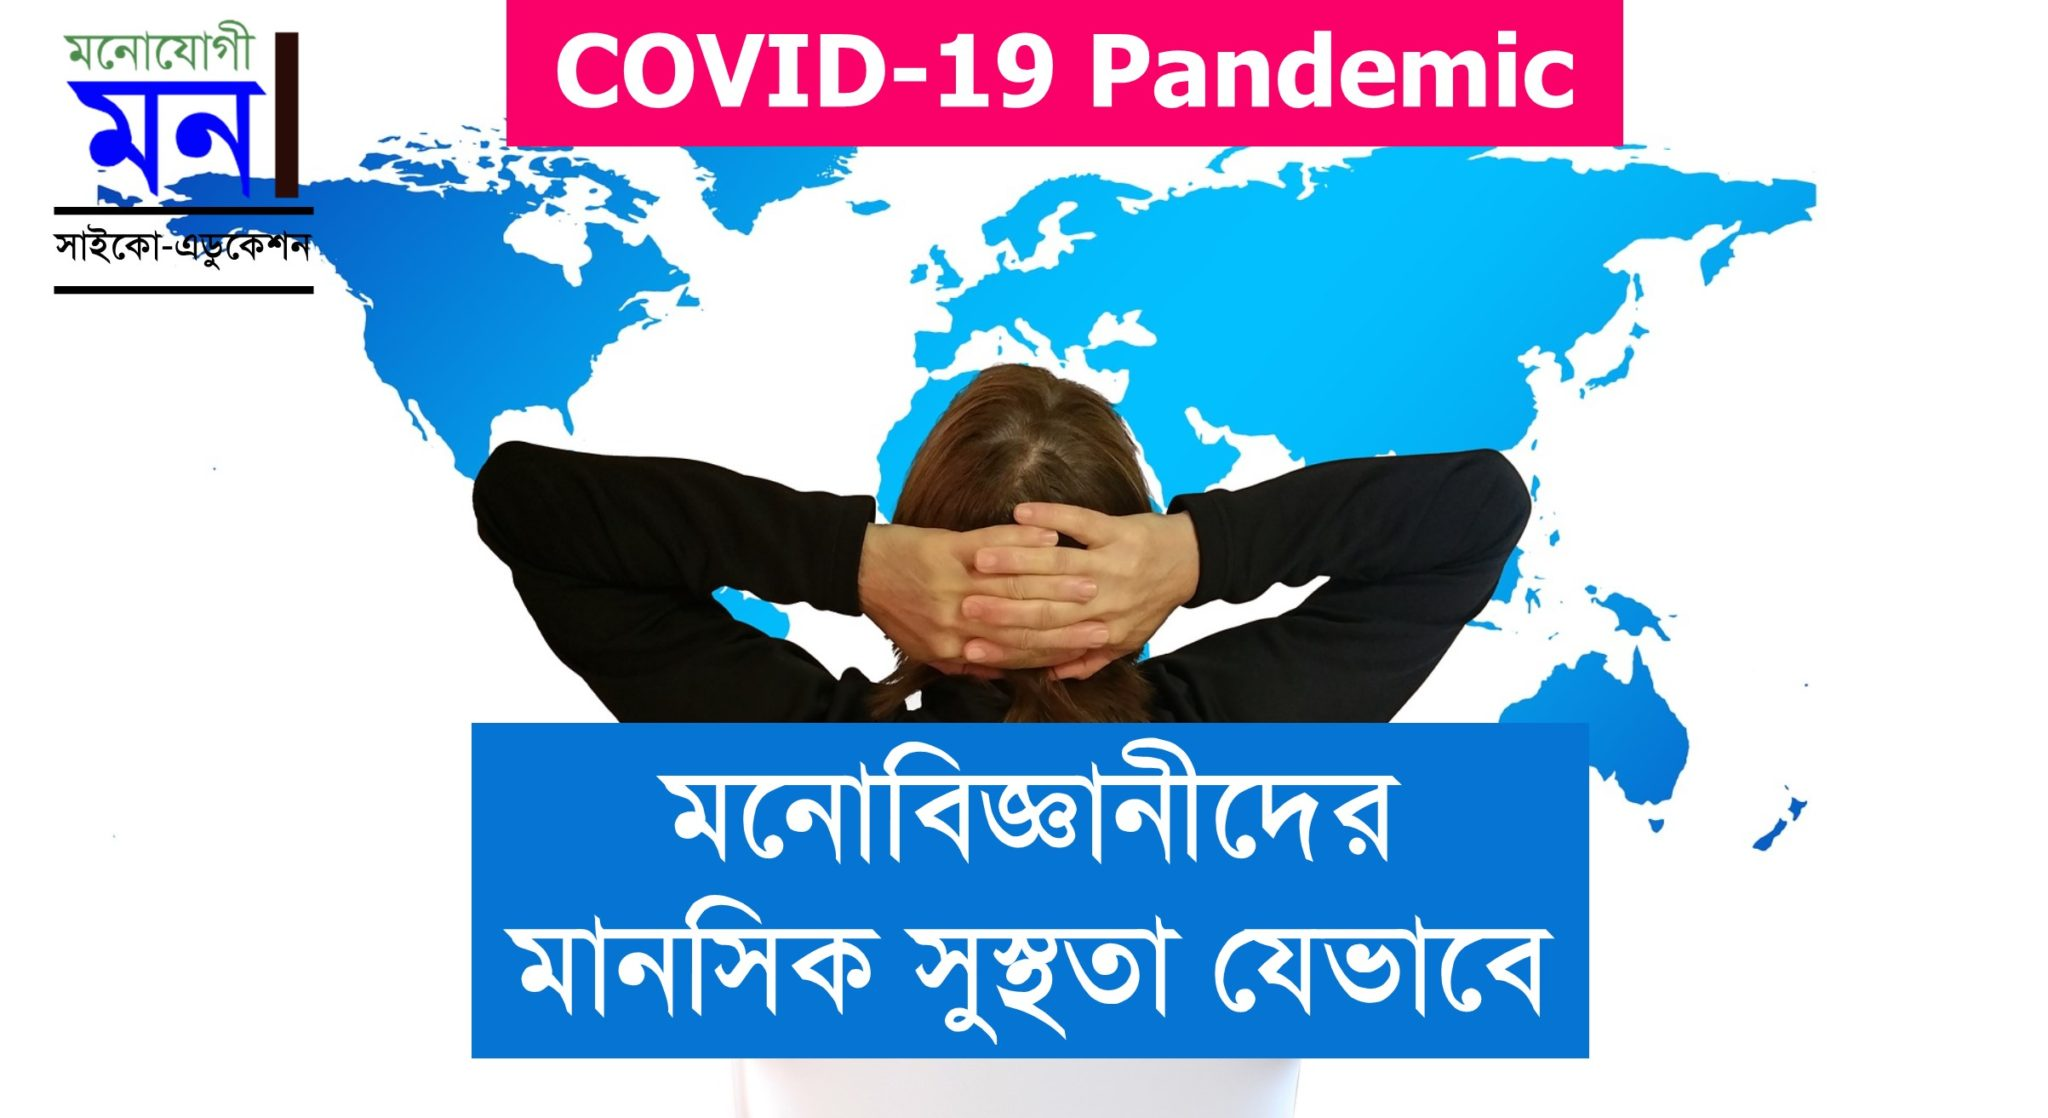 Self care during Covid-19 Pandemic